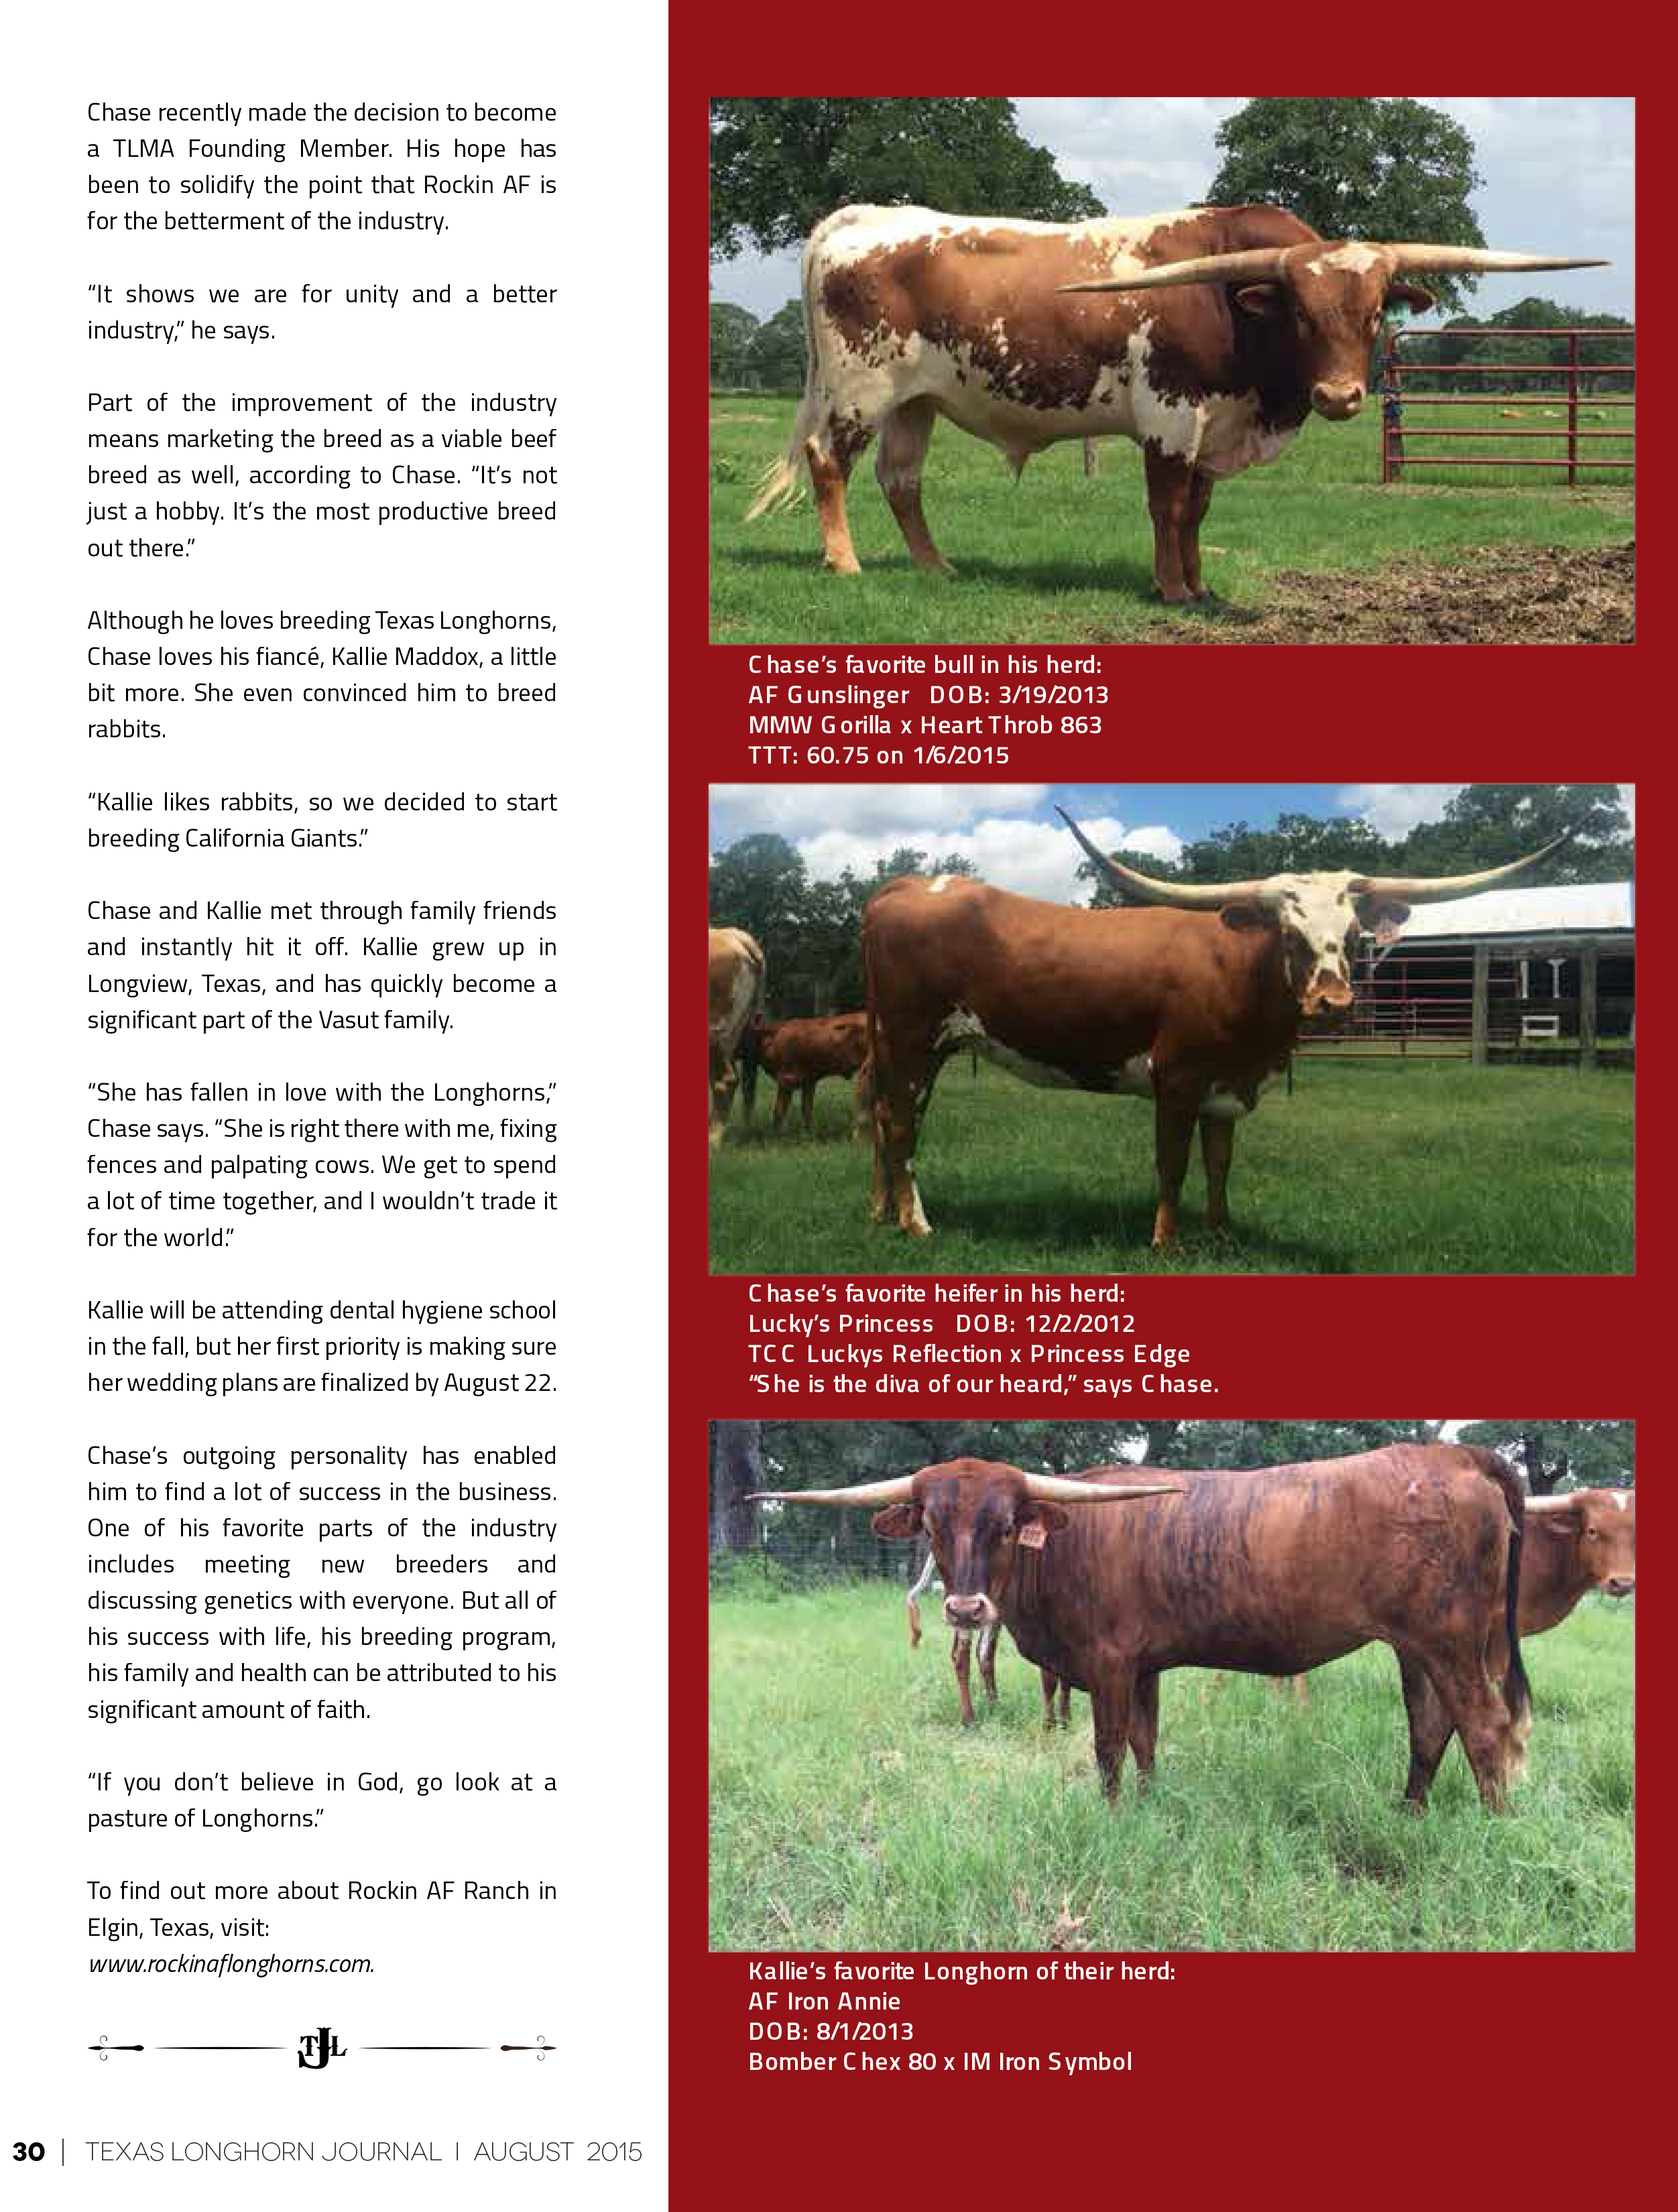 August 2015 Texas Longhorn Journal Article